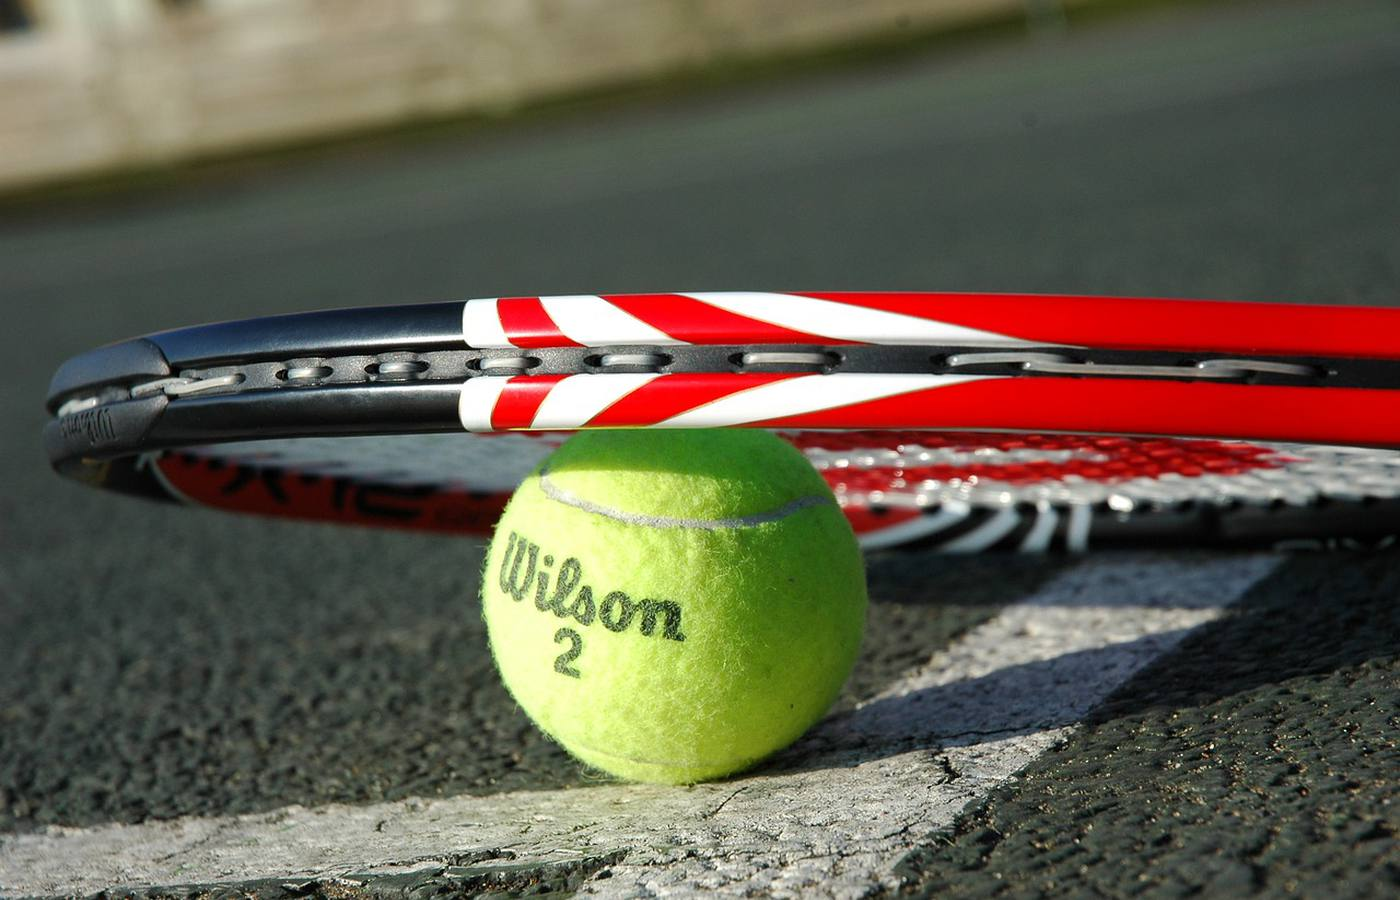 The Most Expensive Tennis Racket: What Pro Owns It?